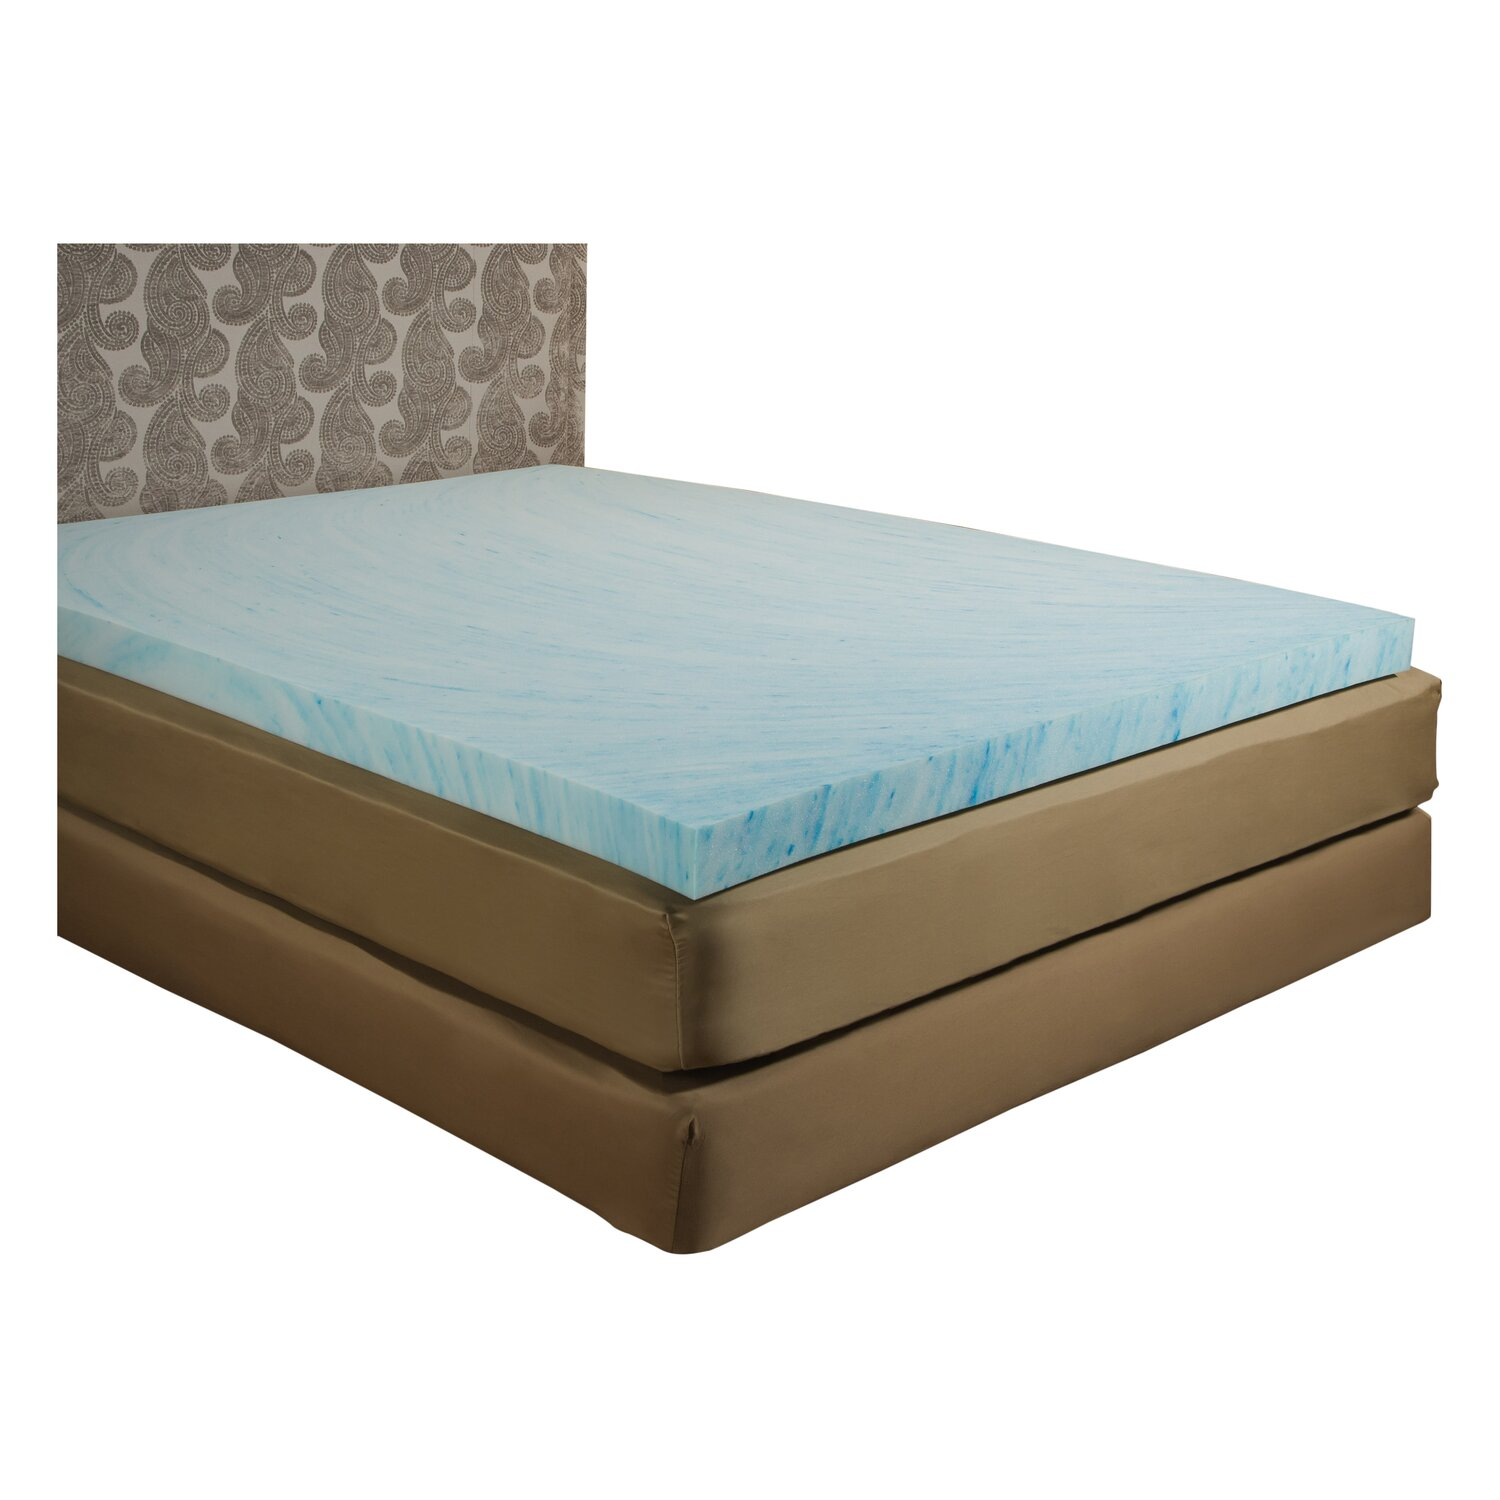 Price Comparisons Continental Sleep Mattress, Twin Size Assembled Mattress With Box Spring, Elegant Collection